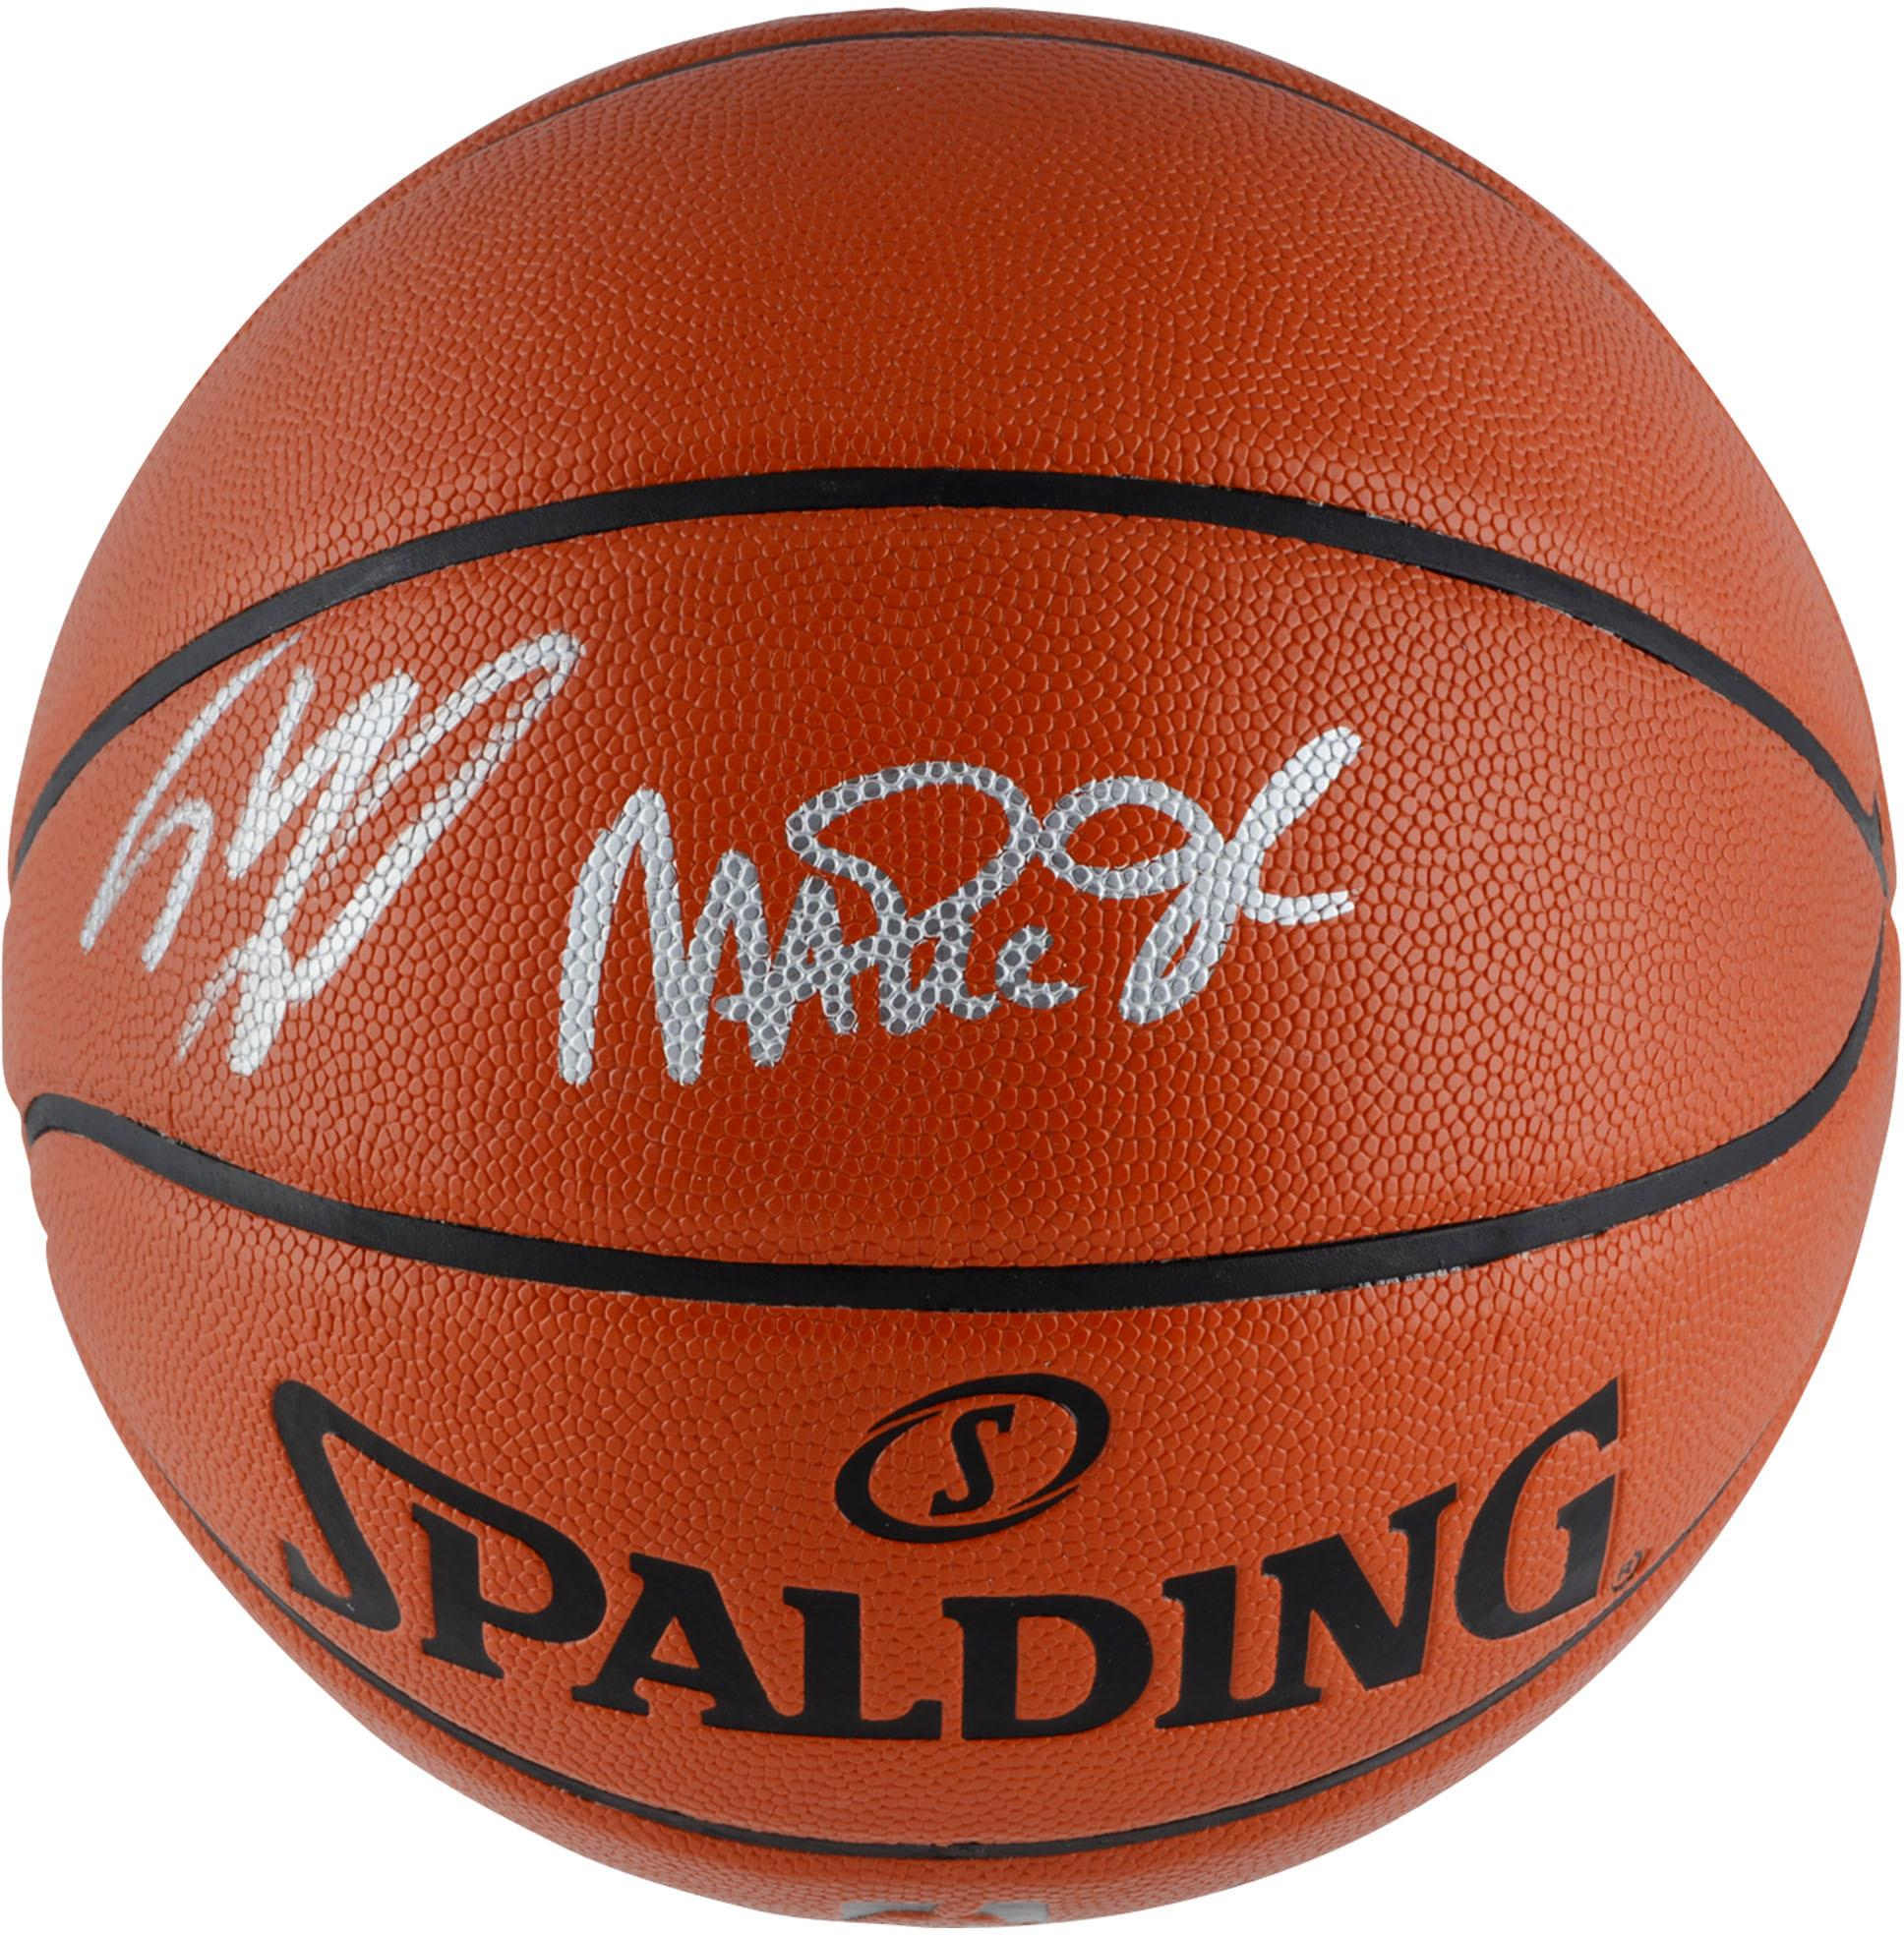 Shaquille O'Neal & Magic Johnson Los Angeles Lakers Dual Signed Indoor/Outdoor Basketball - Fanatics Authentic Certified